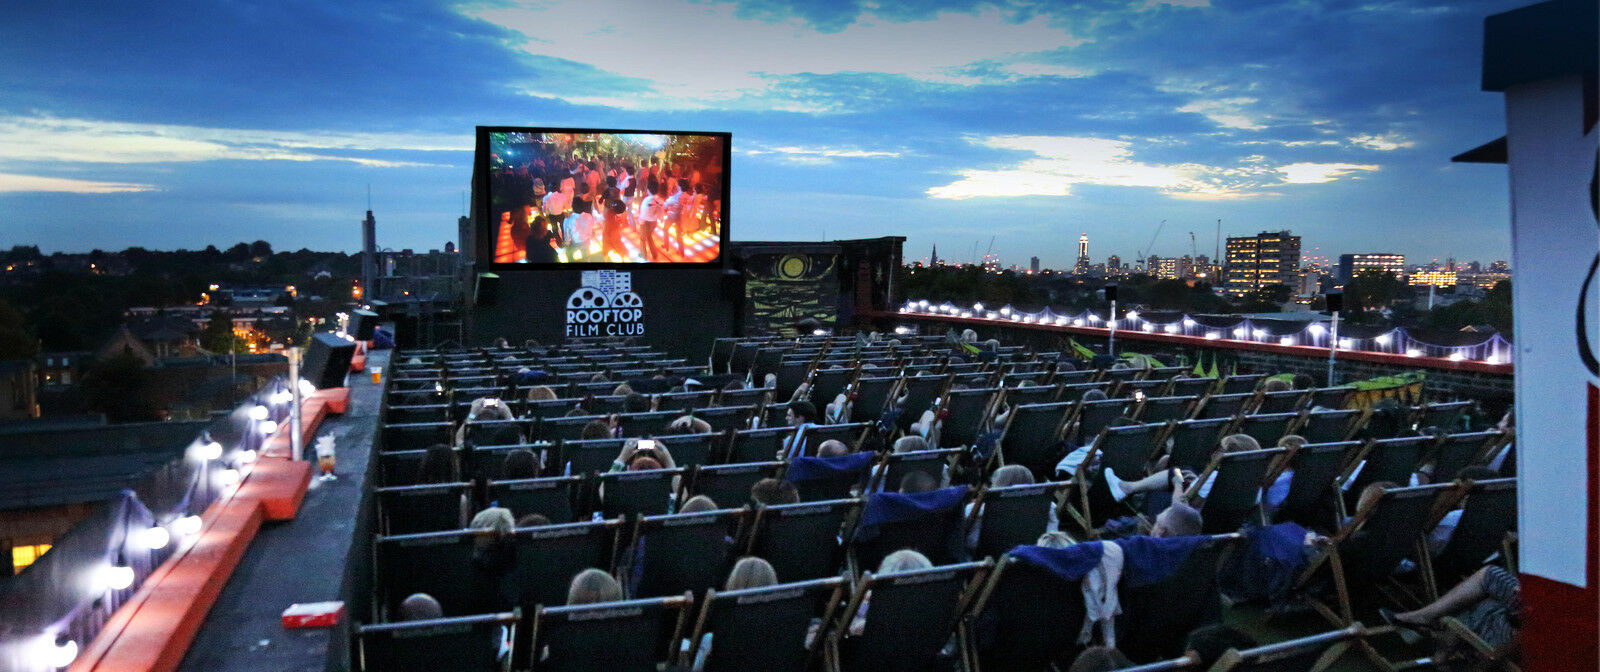 Rooftop Cinema - Wonder Woman